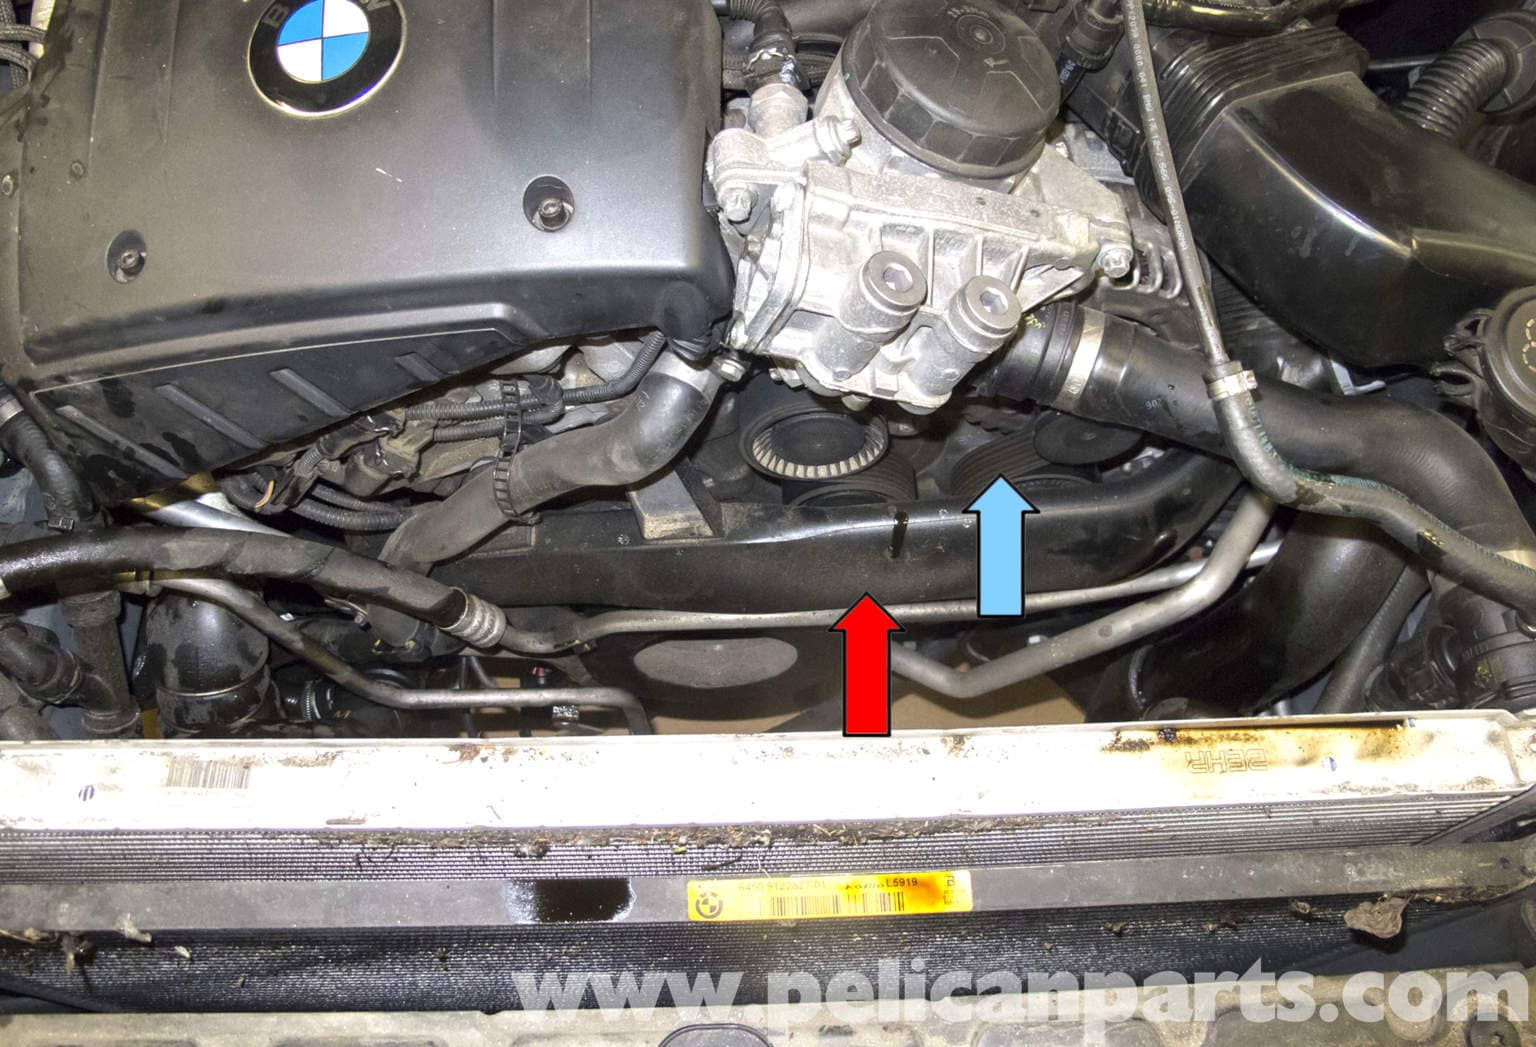 535i belt diagram bmw e60 5 series drive    belt     tensioner  idler replacement  bmw e60 5 series drive    belt     tensioner  idler replacement